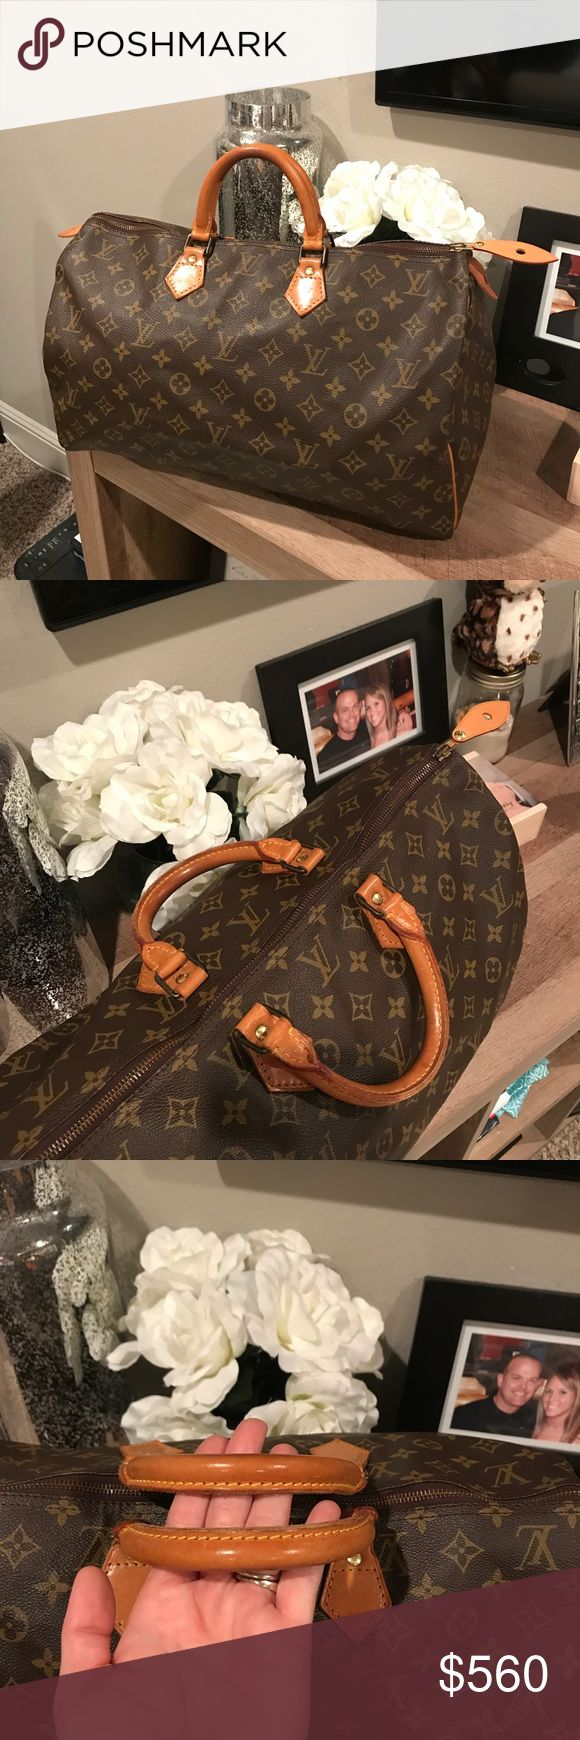 Authentic Louis Vuitton speedy 40!!!! Great condition speedy 40. No foul smell, no exposed pipping, no cracks on canvas, no stains. Even honey patina. Does not come with dustbag. Louis Vuitton Bags Totes